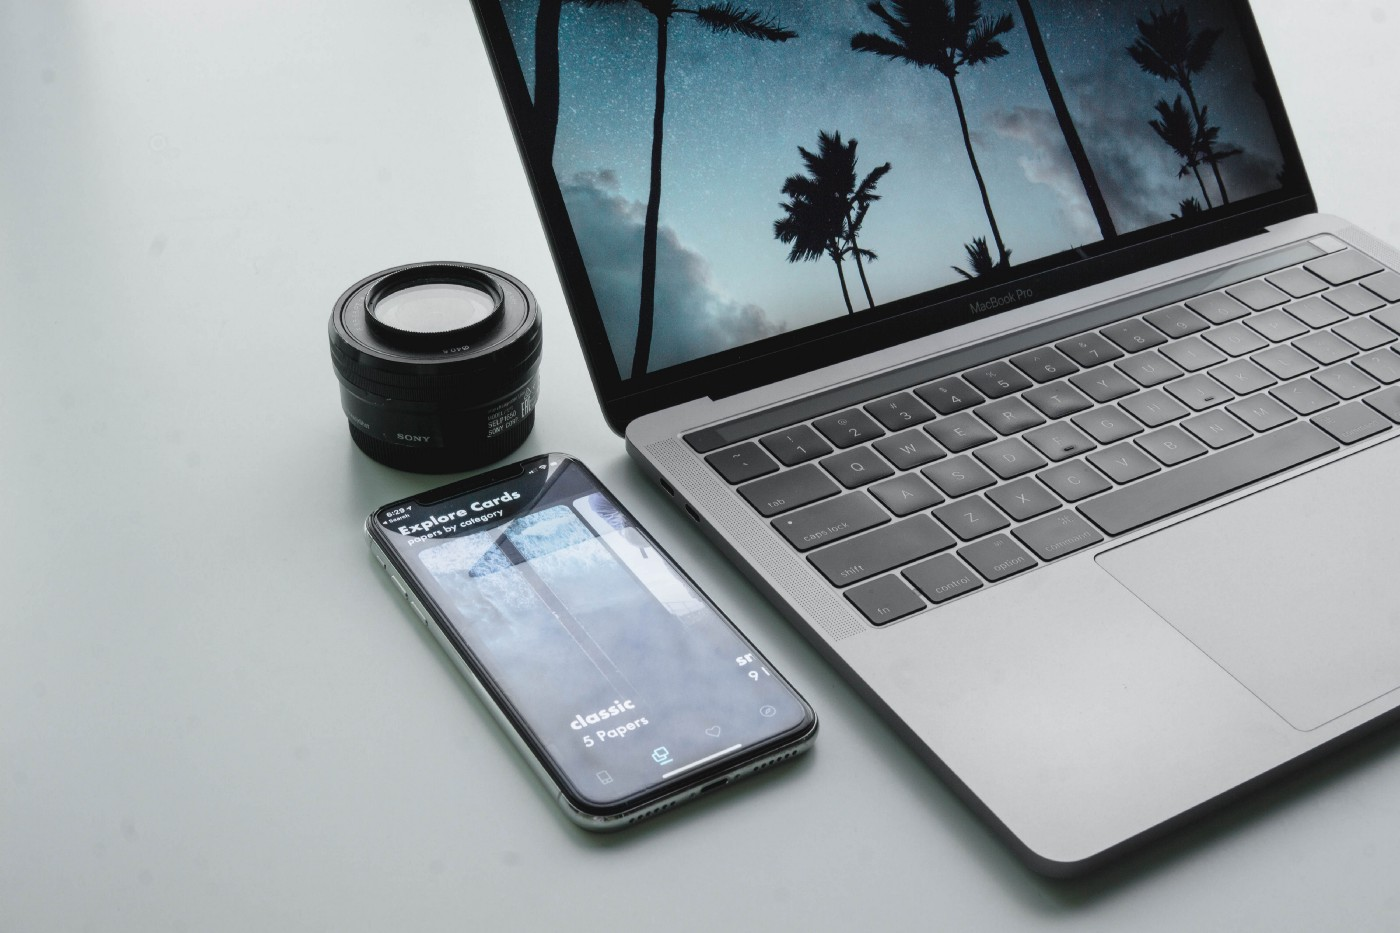 Phone, camera lens and laptop on table